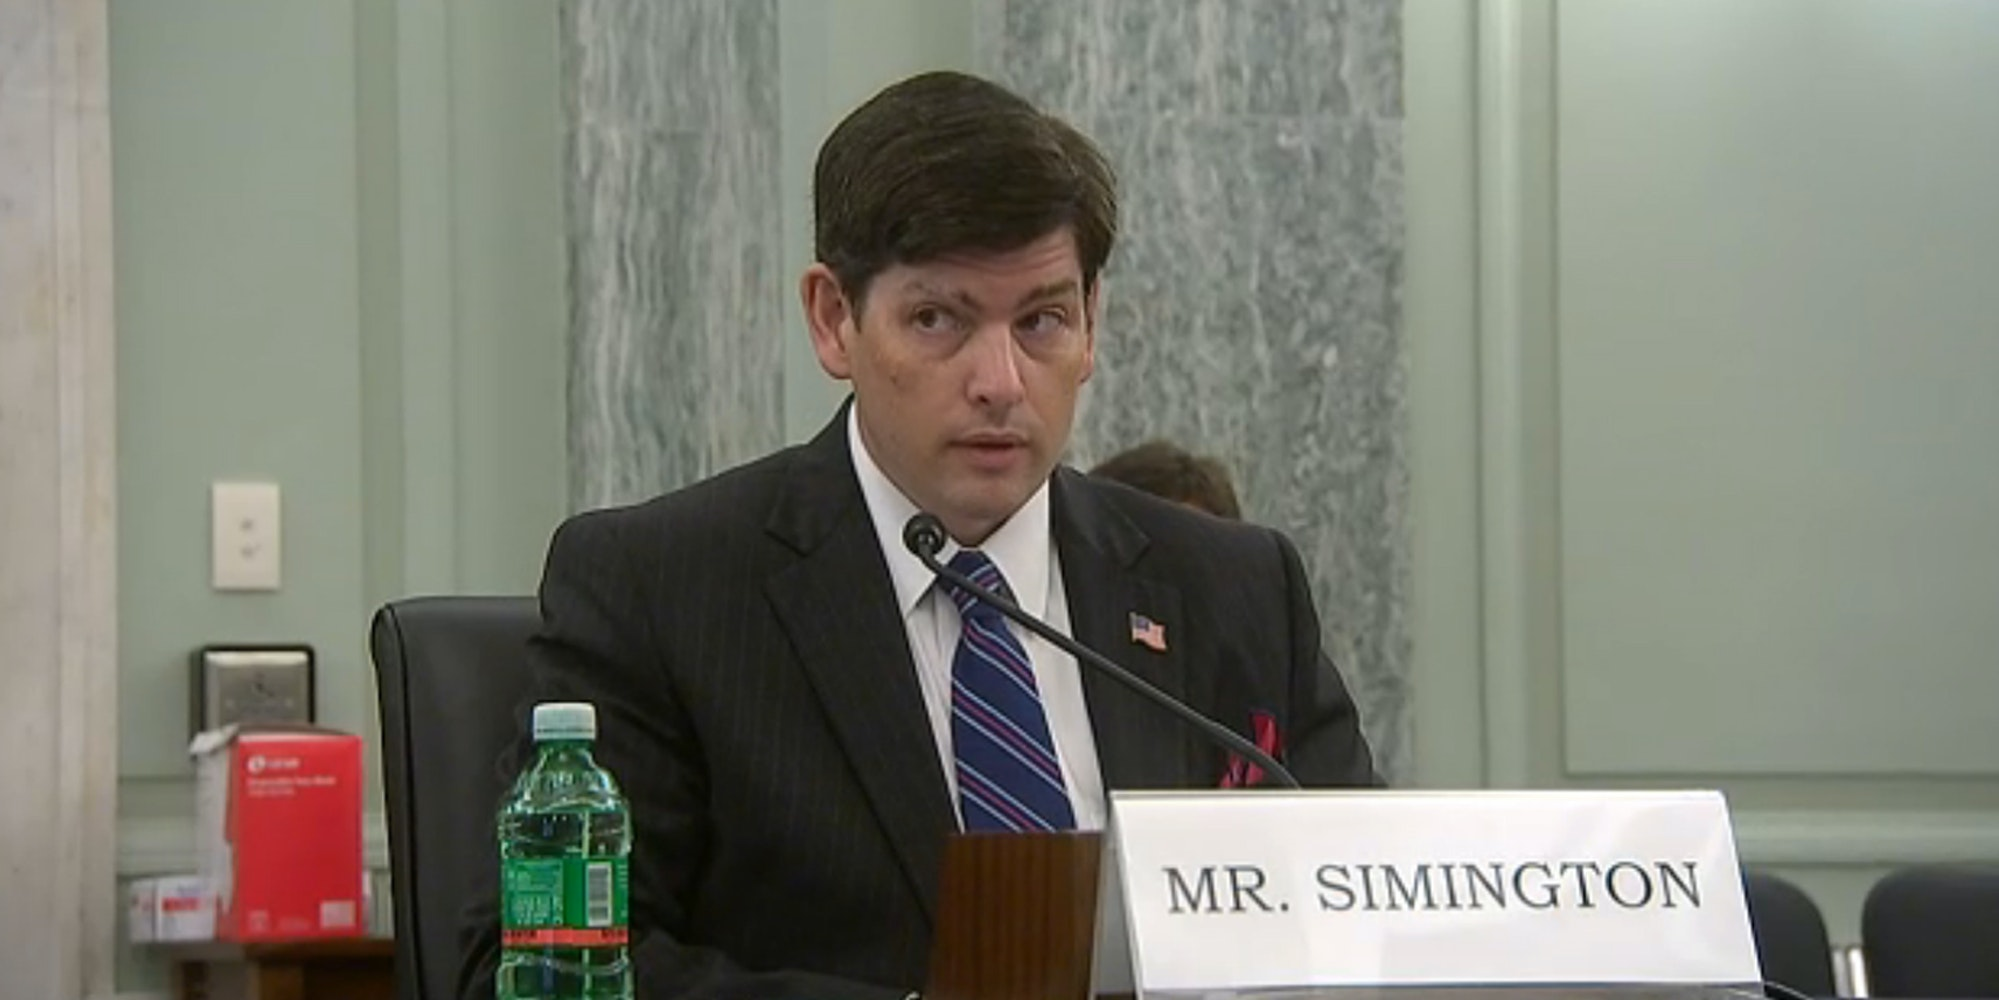 Nathan Simington was appointed to the FCC after the Senate voted to confirm his nomination. He was nominated by President Donald Trump.